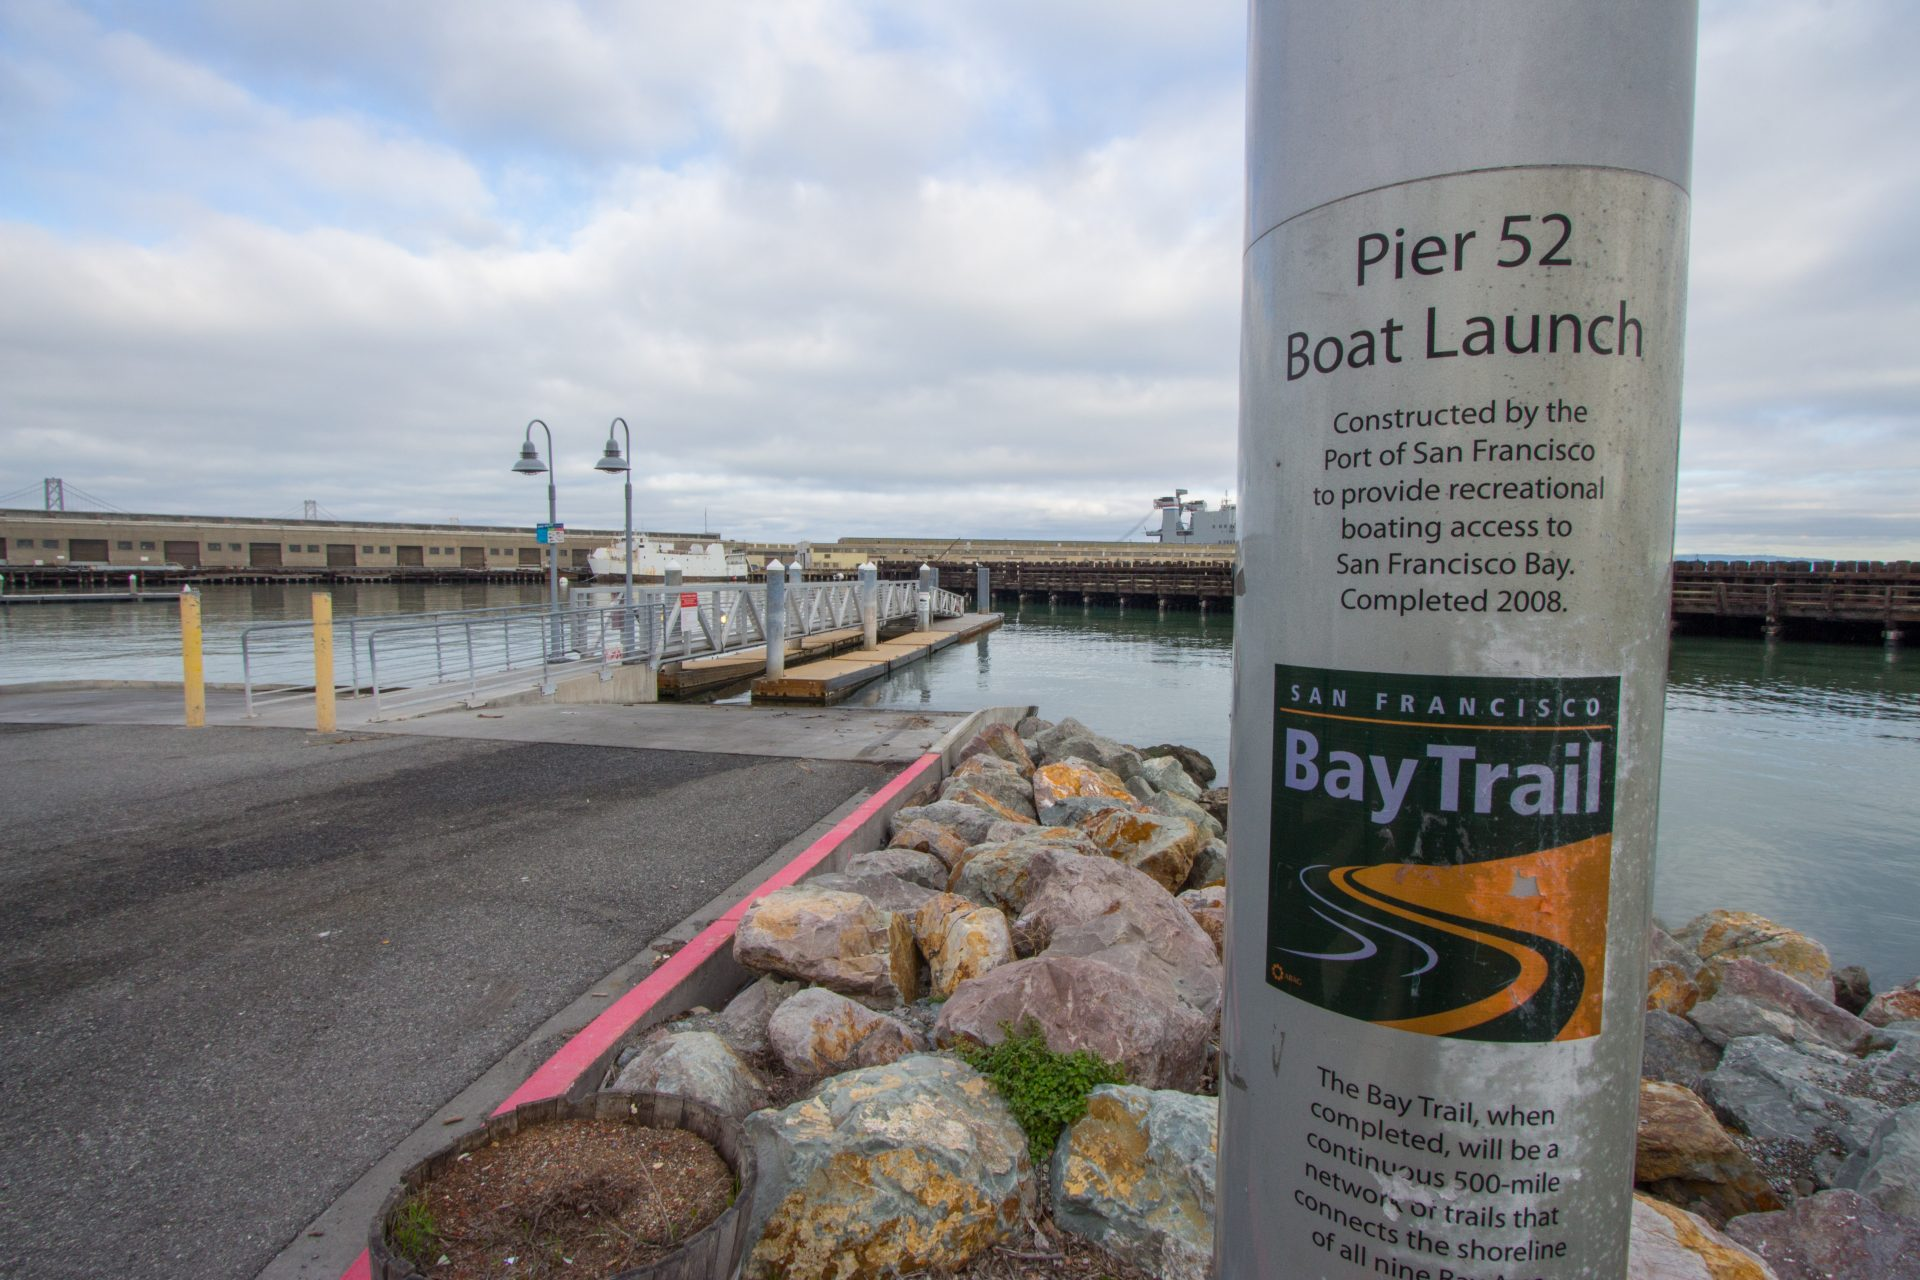 Sign printed on round post: Pier 52 Boat Launch: Constructed by the Port of San Francisco to provide recreational boating access to San Francisco Bay. Completed in 2008.